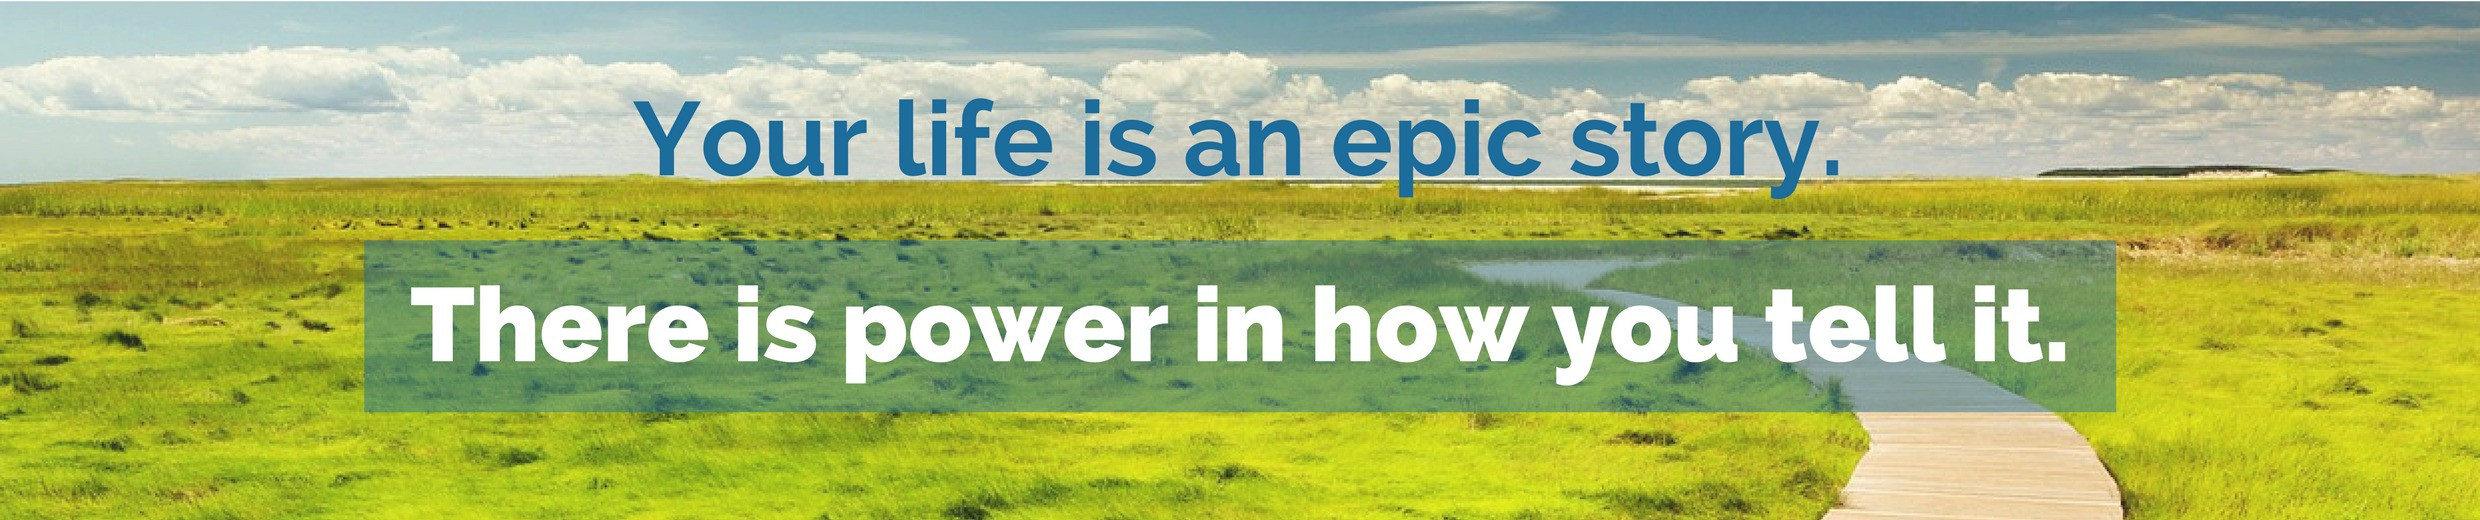 Your life is an epic story. There is  power  in how you tell it.